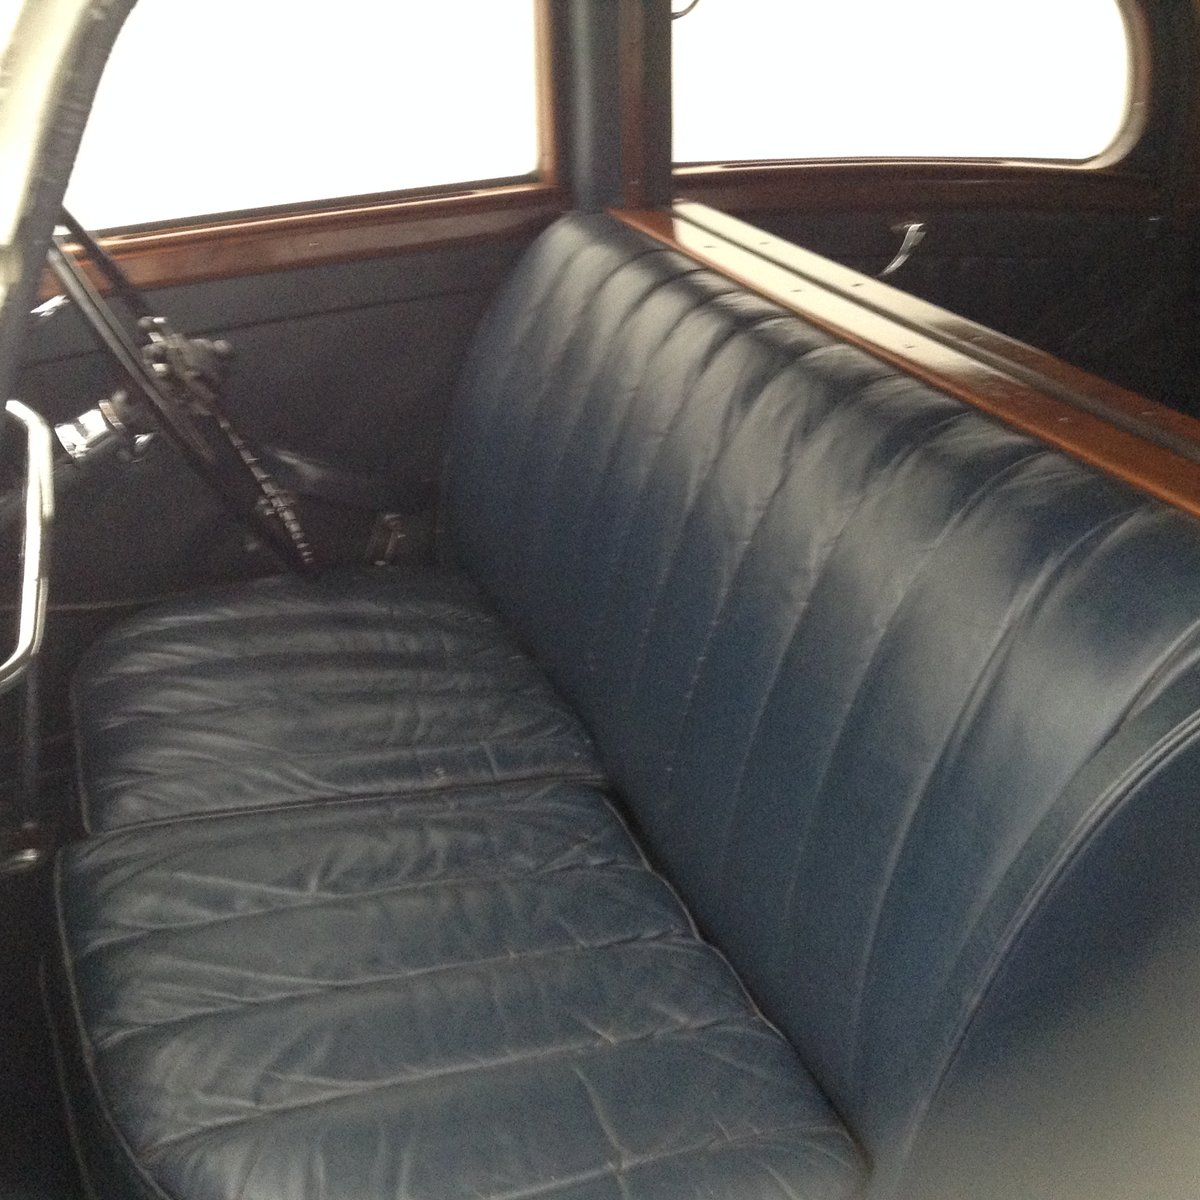 1936 Rolls Royce 25/30 Limo with glass division For Sale (picture 6 of 6)